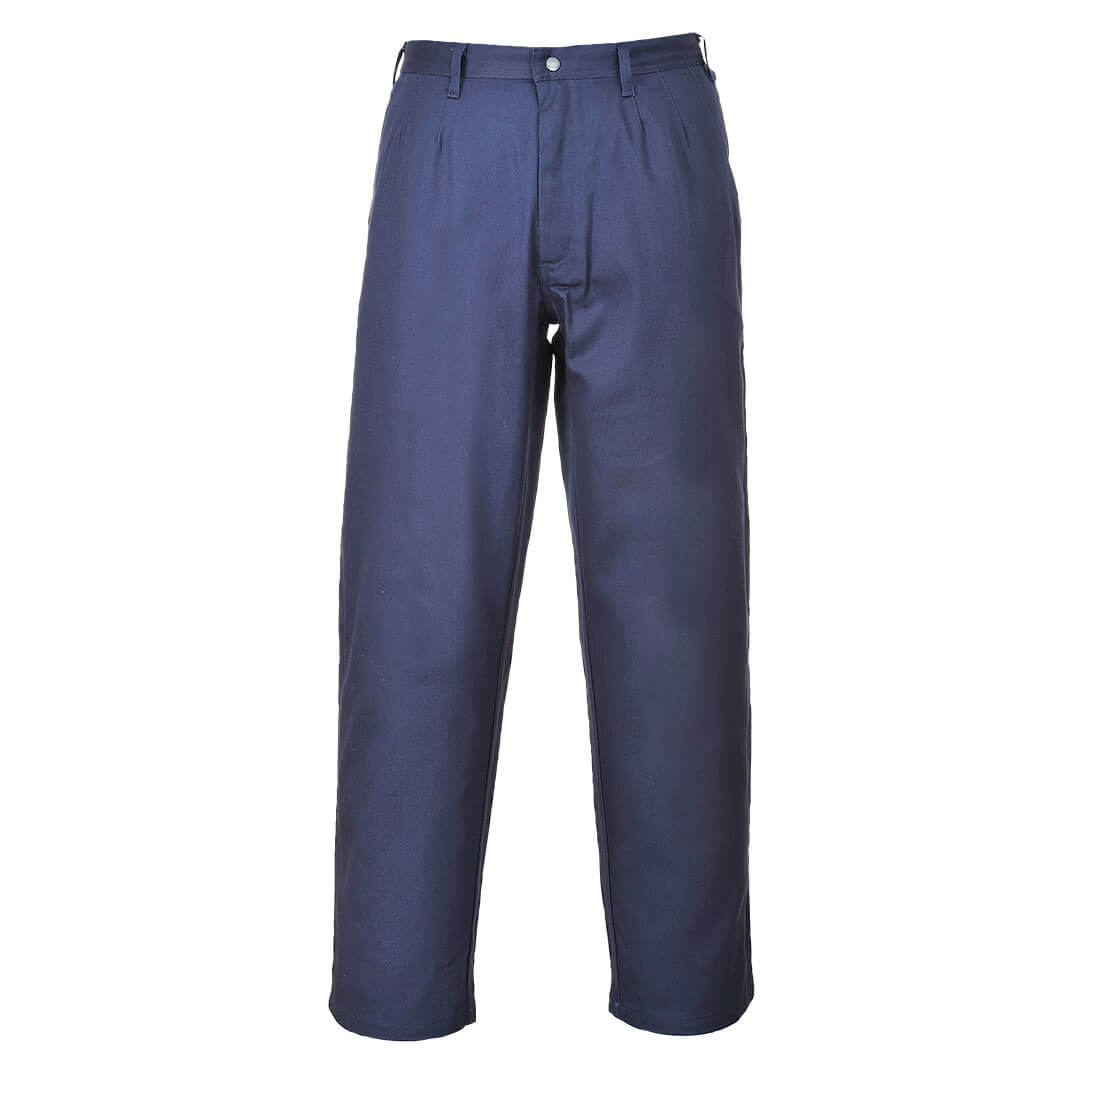 """Image of Biz Flame Pro Mens Flame Resistant Trousers Navy Blue Extra Large 34"""""""